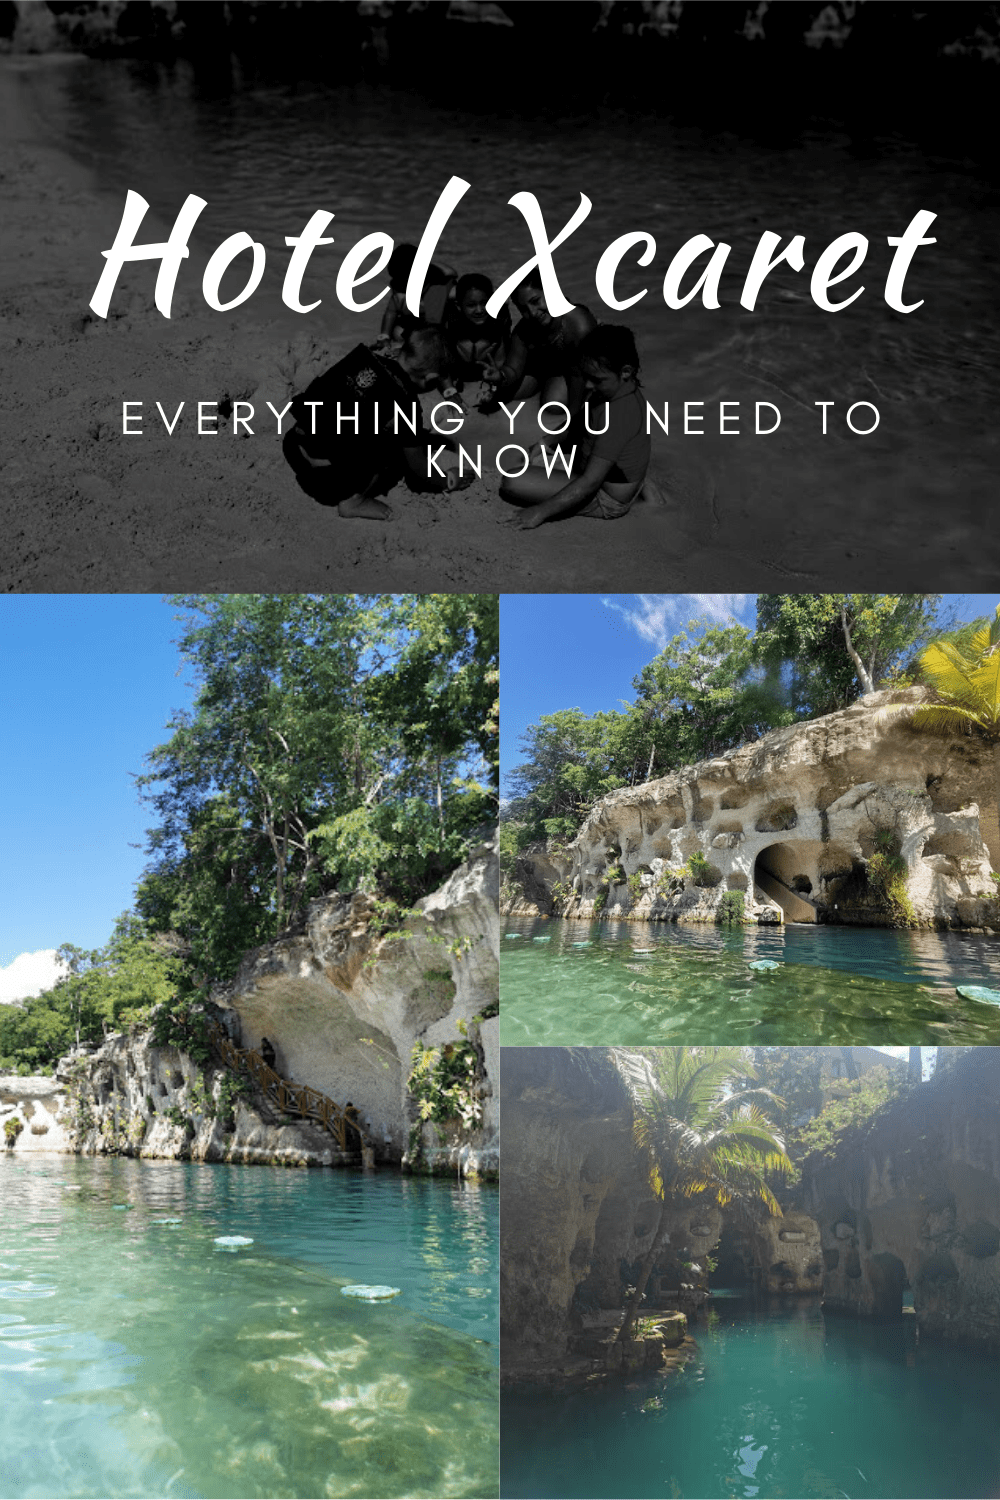 Hotel Xcaret: Everything you need to know